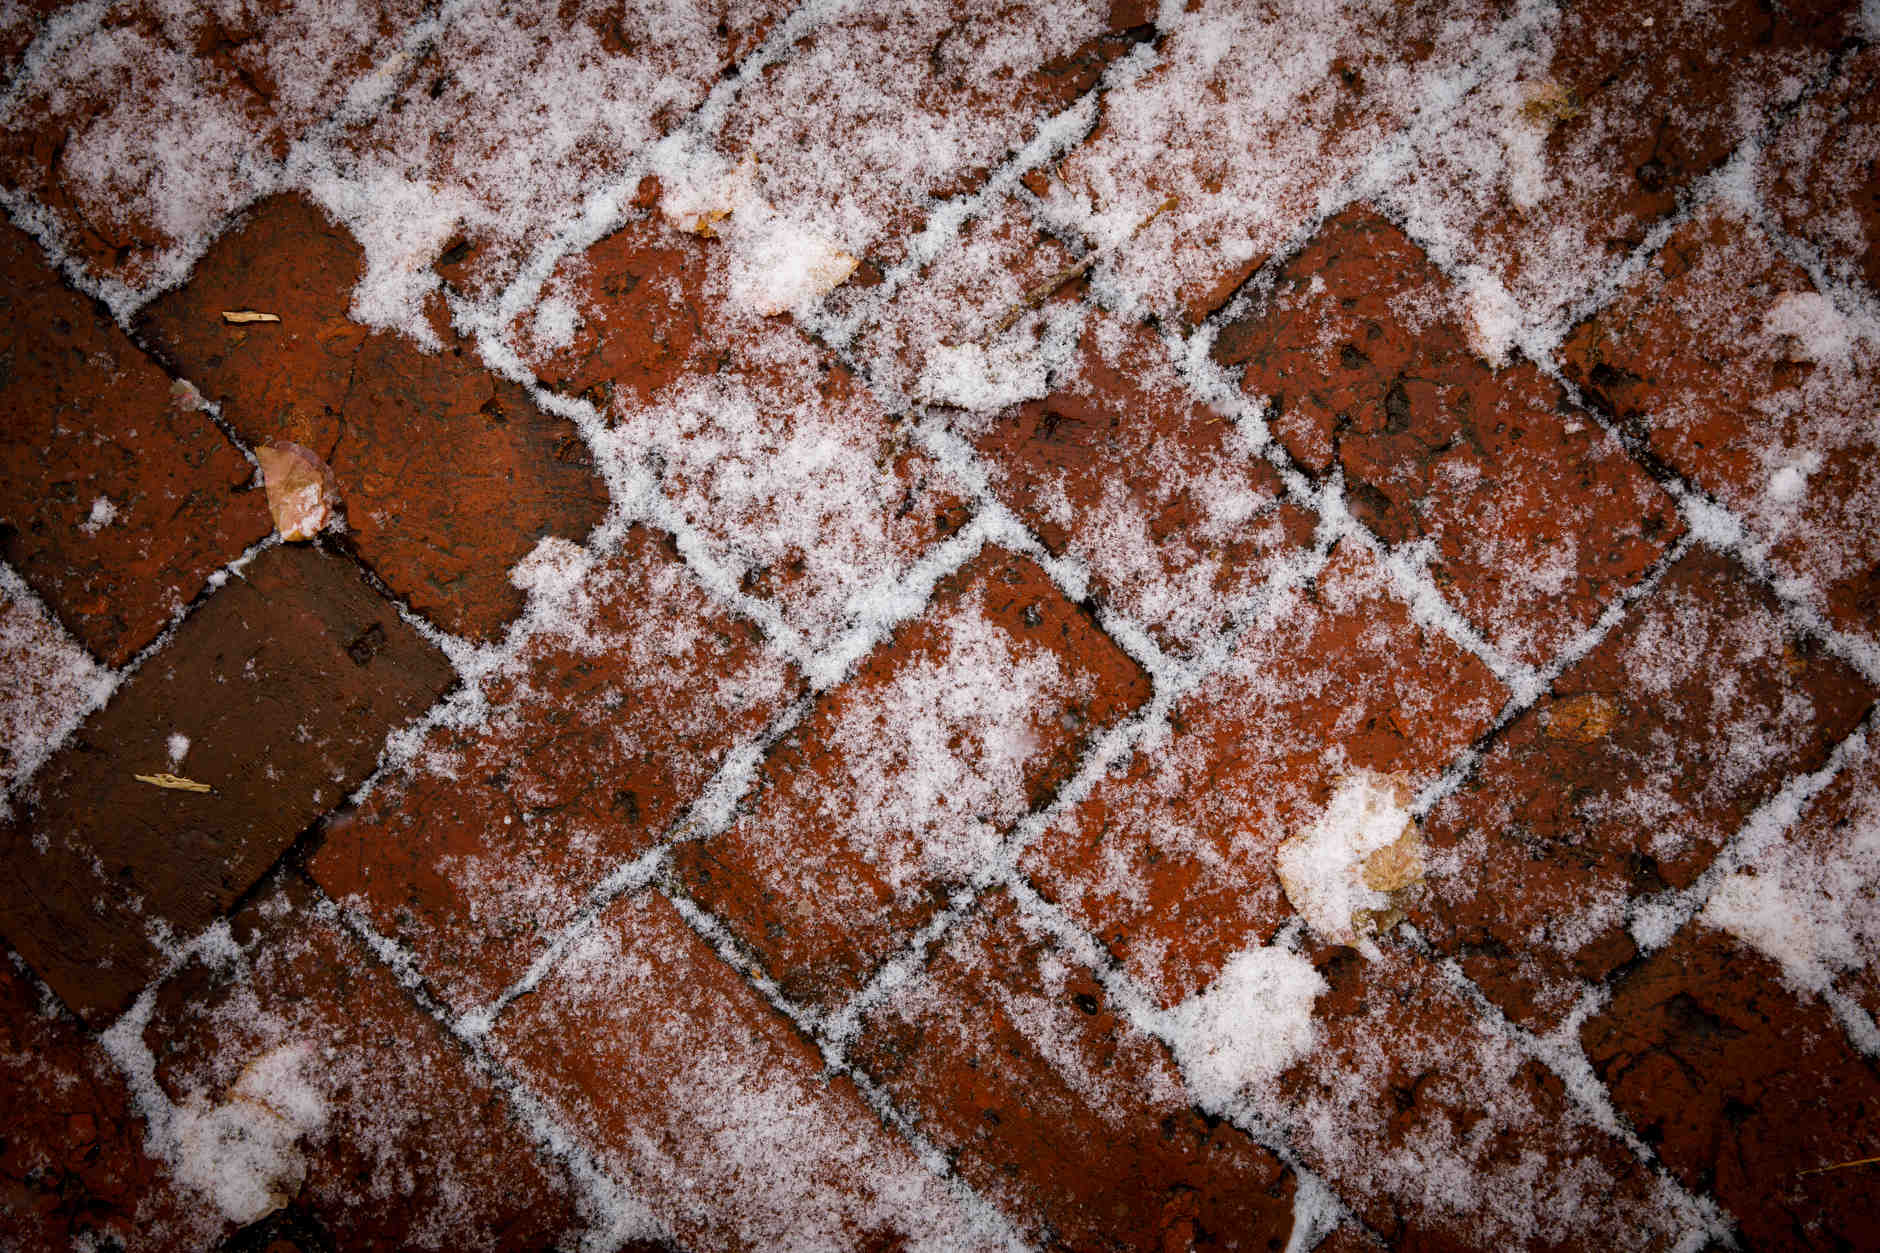 Snow accumulates on a brick pathway in the Old Crescent at IU Bloomington on Thursday, March 7, 2019. (James Brosher/Indiana University)